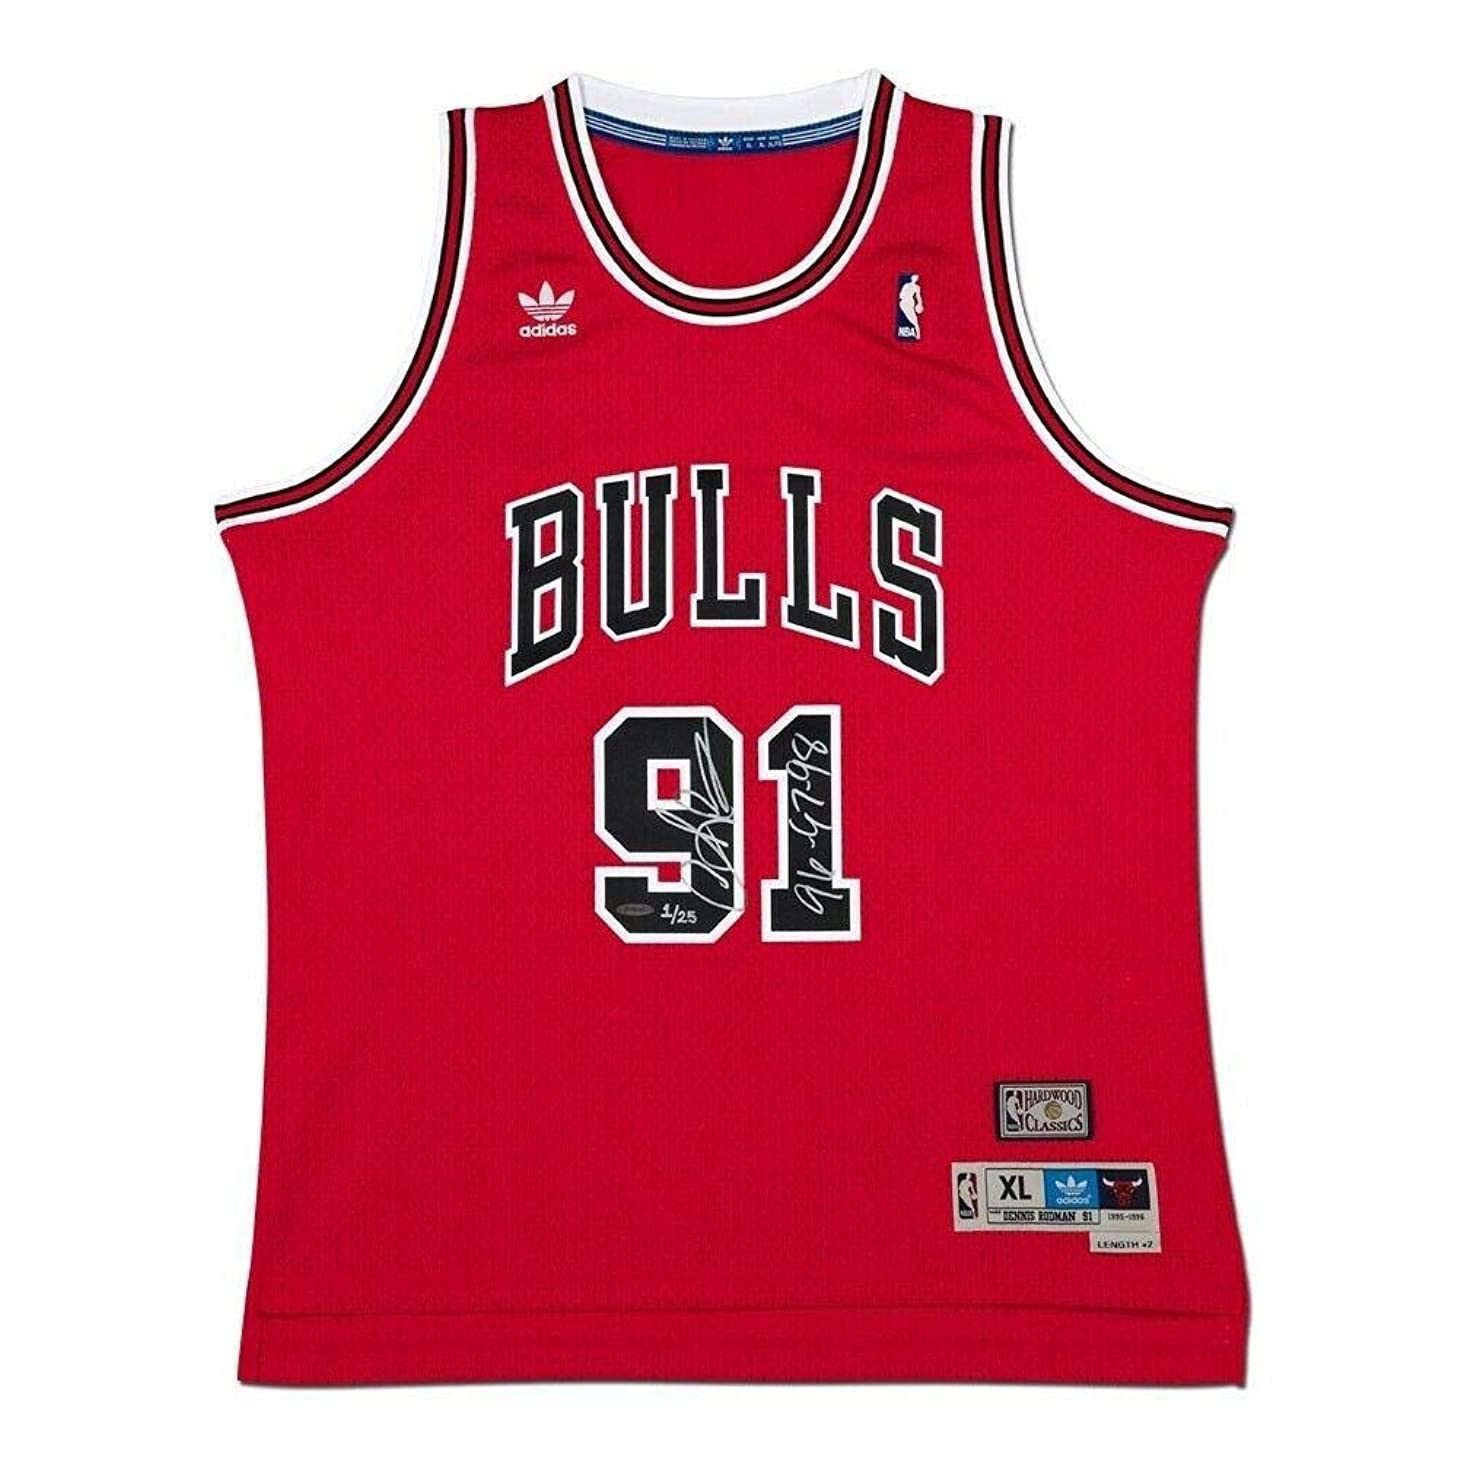 Autographed Dennis Rodman Jersey - Swingman Red Inscribed #/25 - Upper Deck Certified - Autographed NBA Jerseys